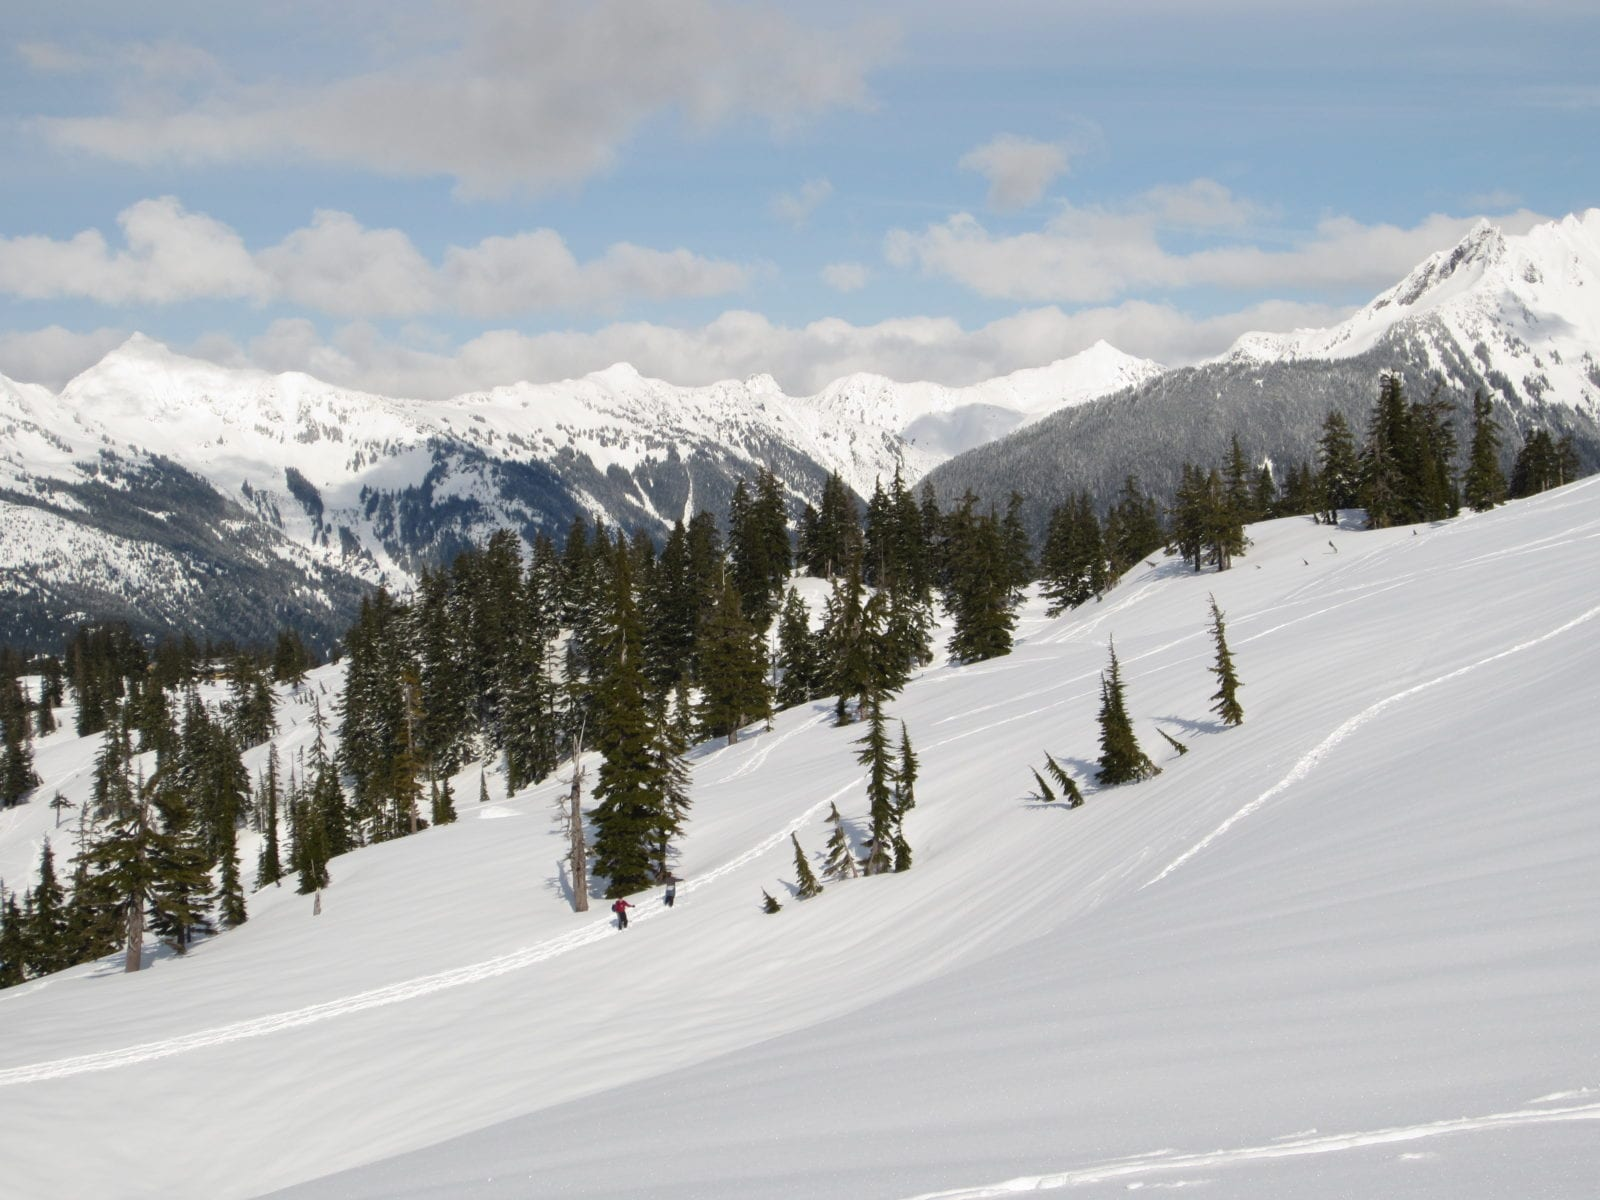 Snowshoe View at Heather Meadows